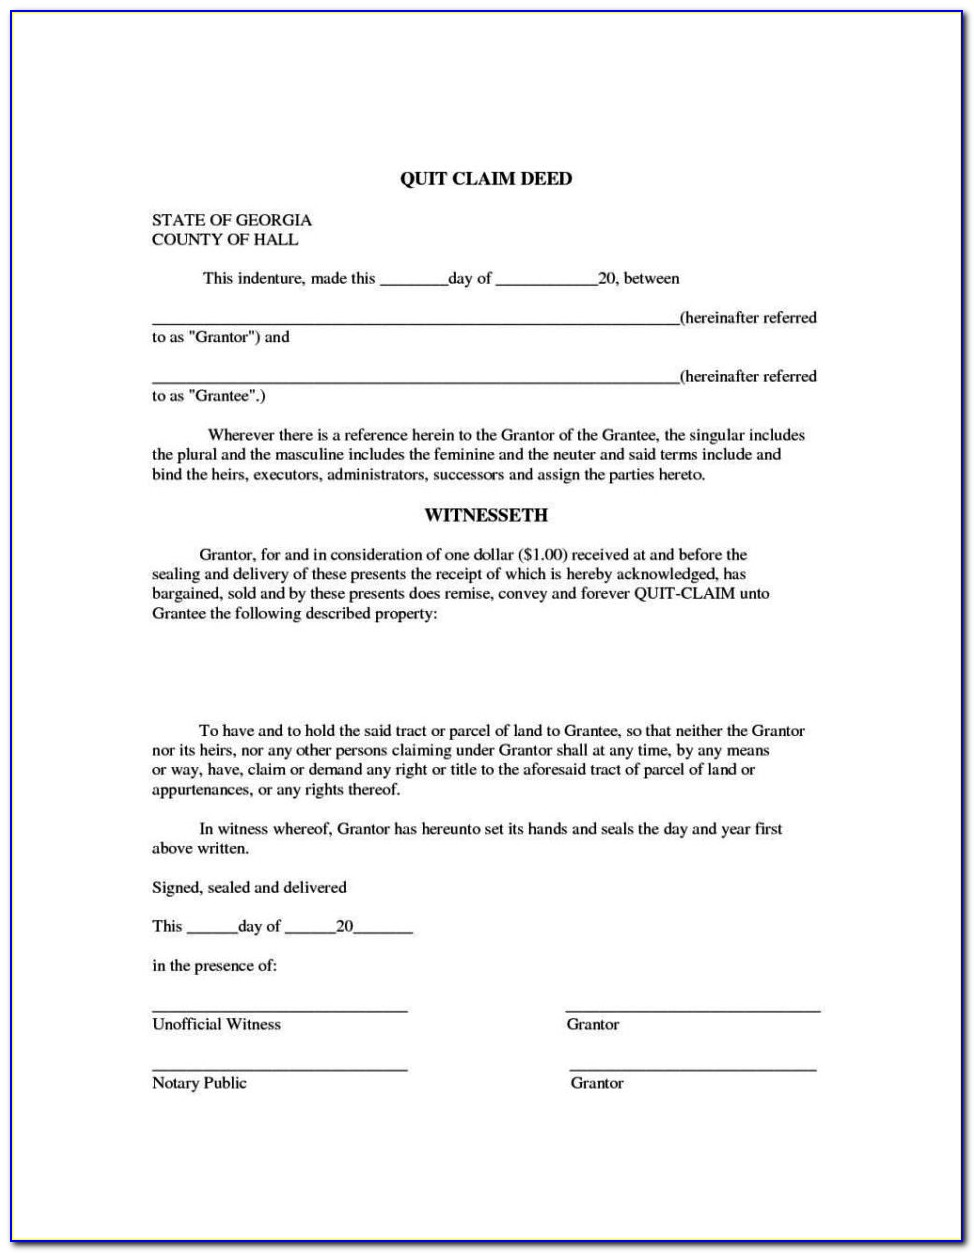 Free Printable 1099 Misc Tax Form Template